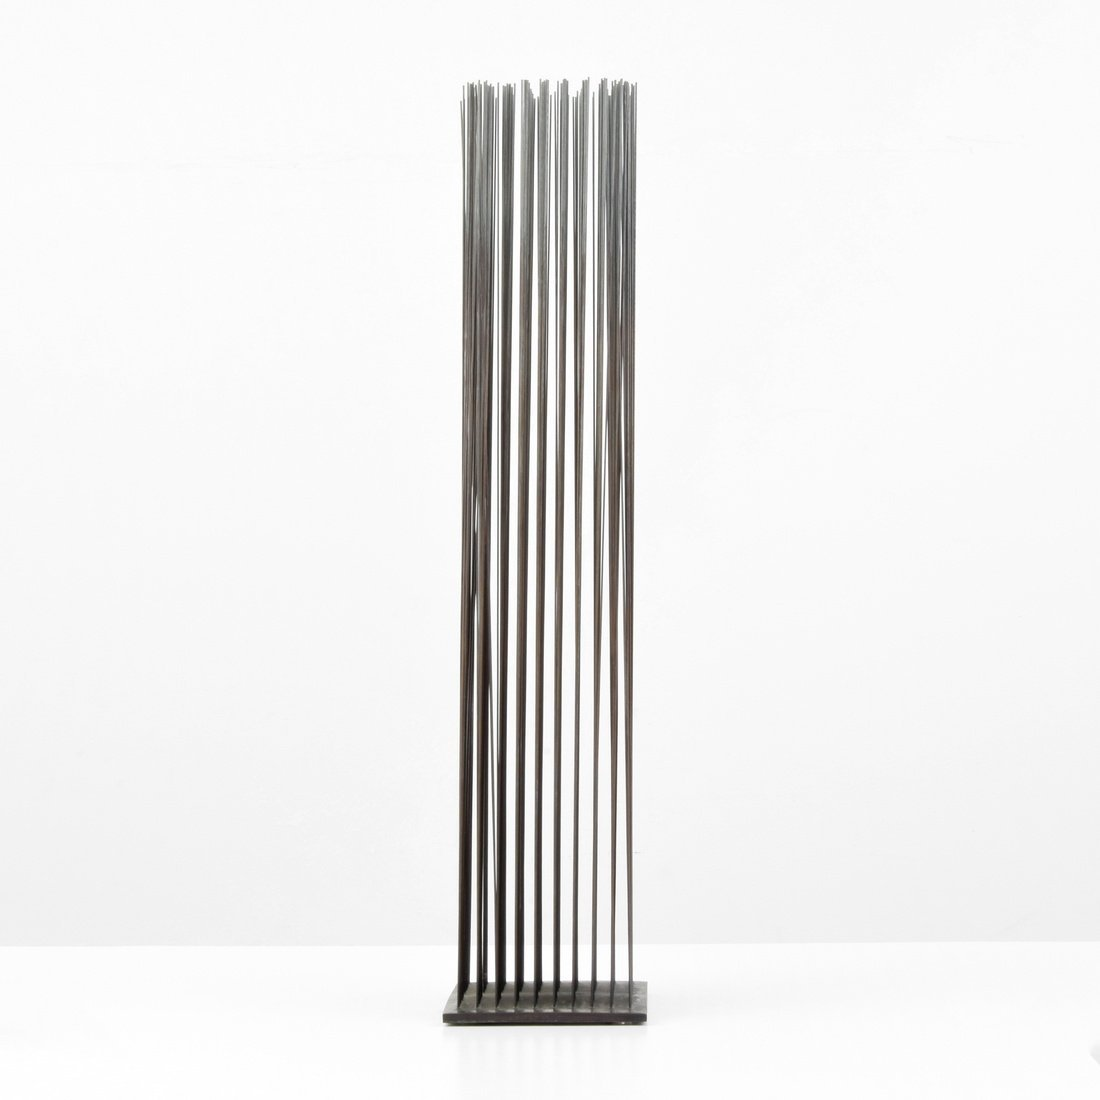 "Rare Harry Bertoia SONAMBIENT Sculpture, 37""H"